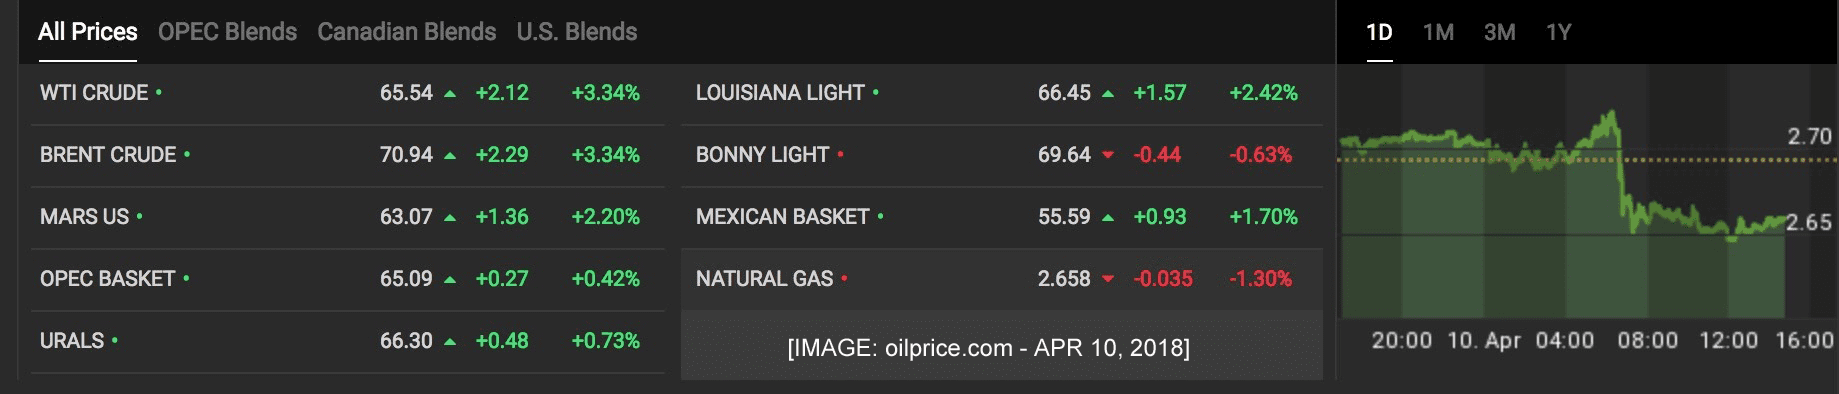 Image oil prices